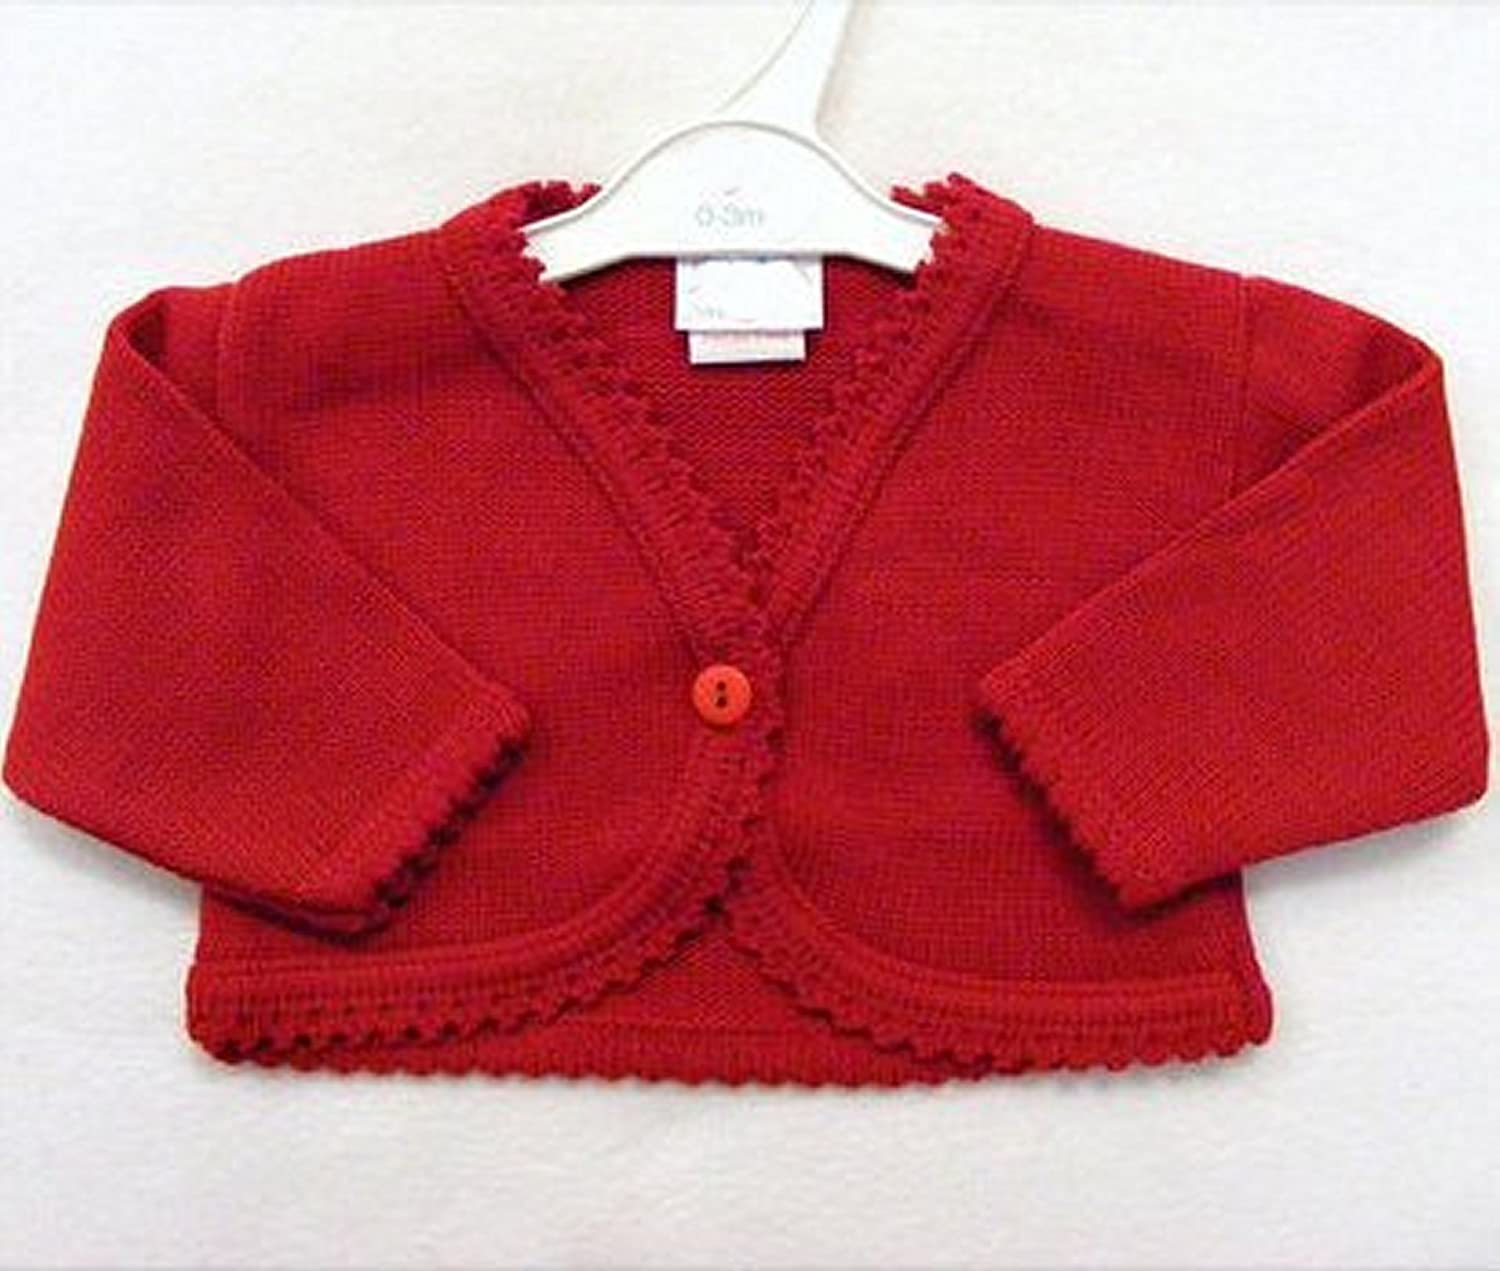 Baby Girls Red Knitted Bolero Cardigan by Dandelion (0-3 Months)